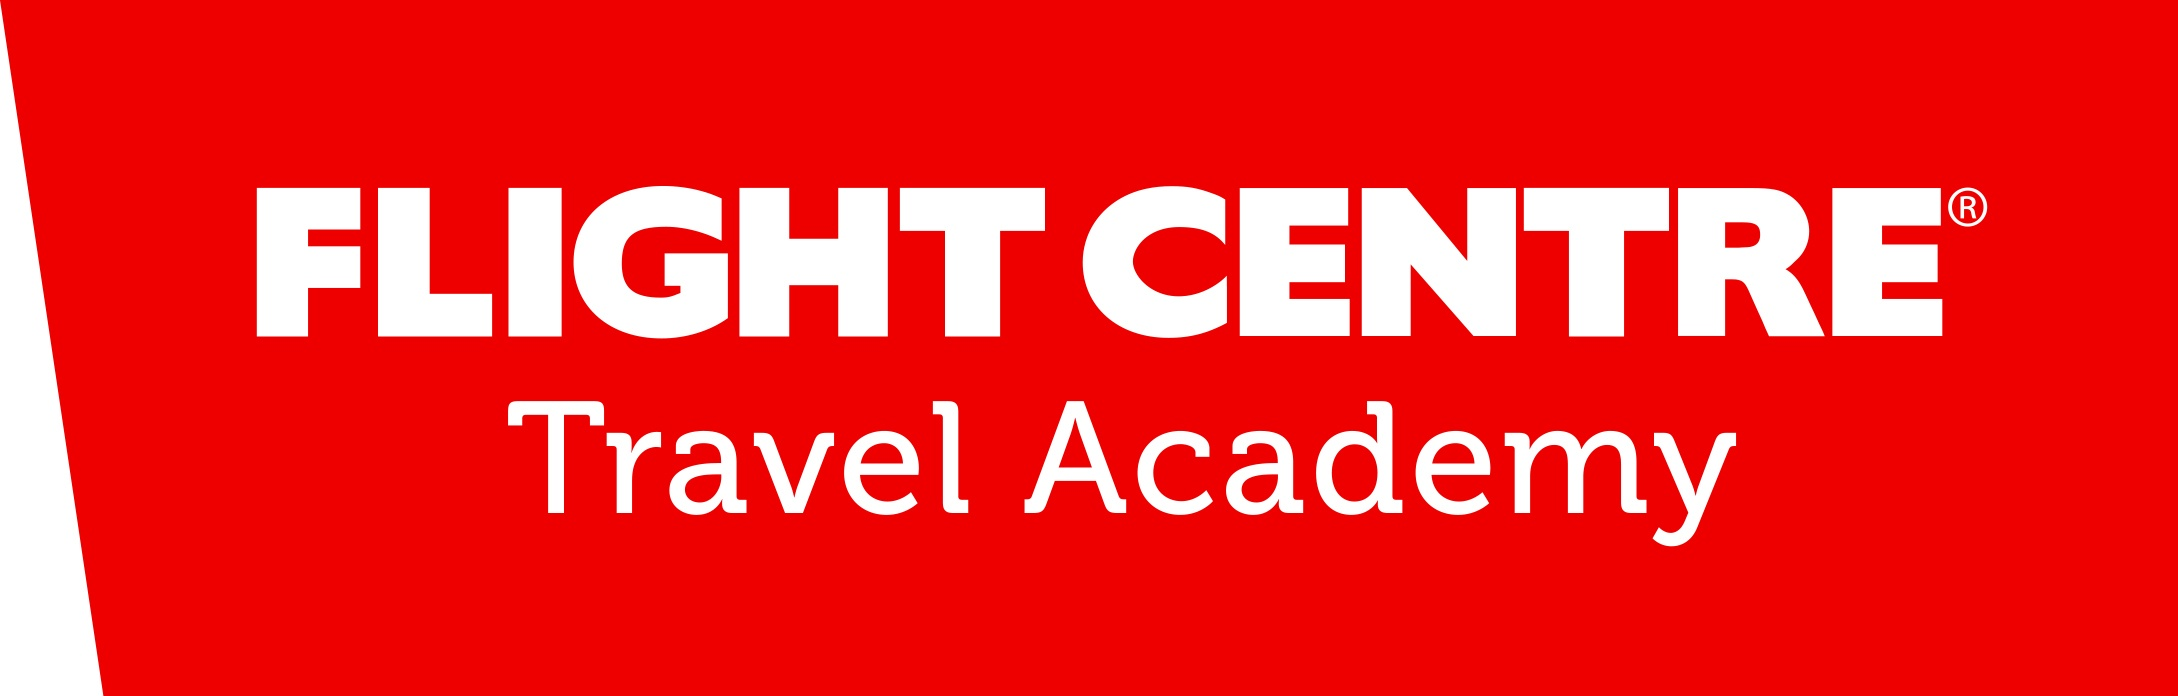 Flight Centre Travel Academy Team